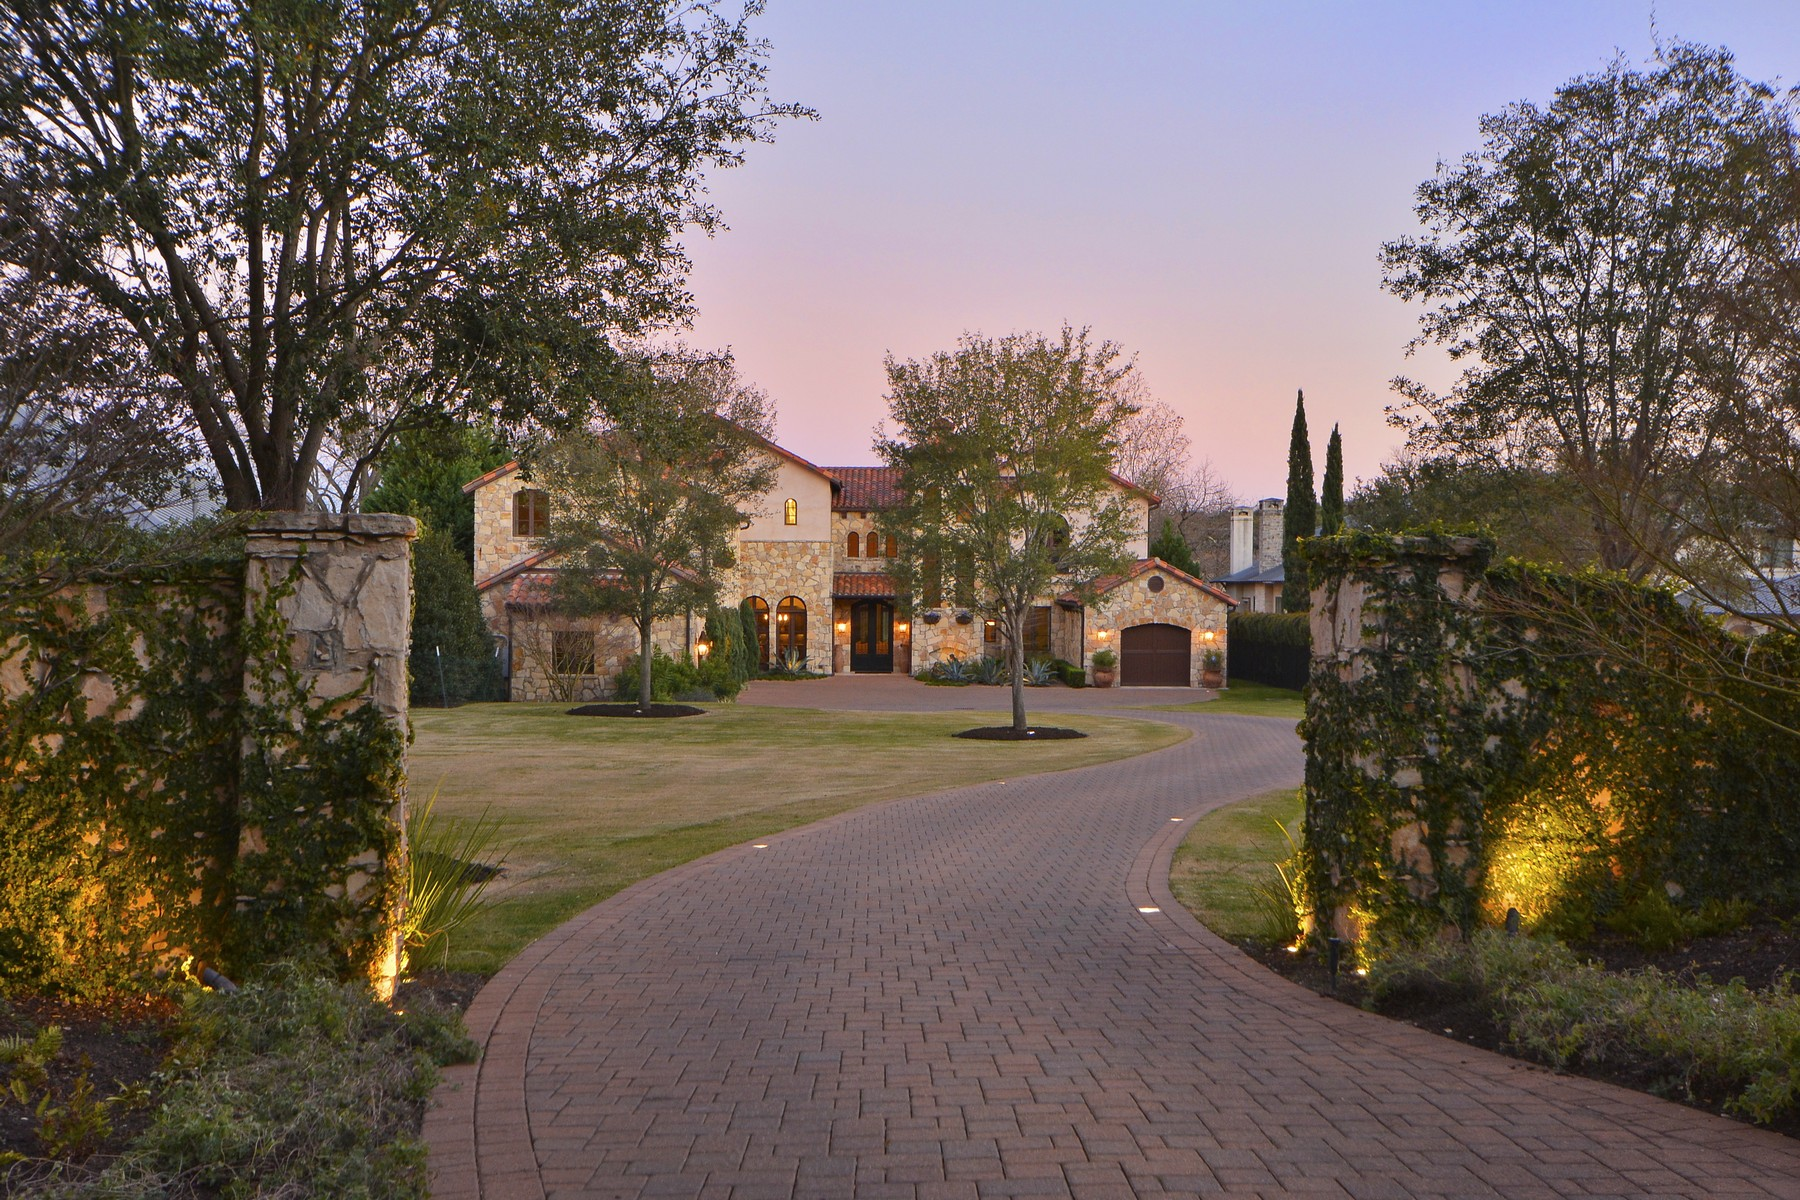 Single Family Home for Sale at Iconic Waterfront Home on Lake Austin 2611 Westlake Dr Austin, Texas 78746 United States